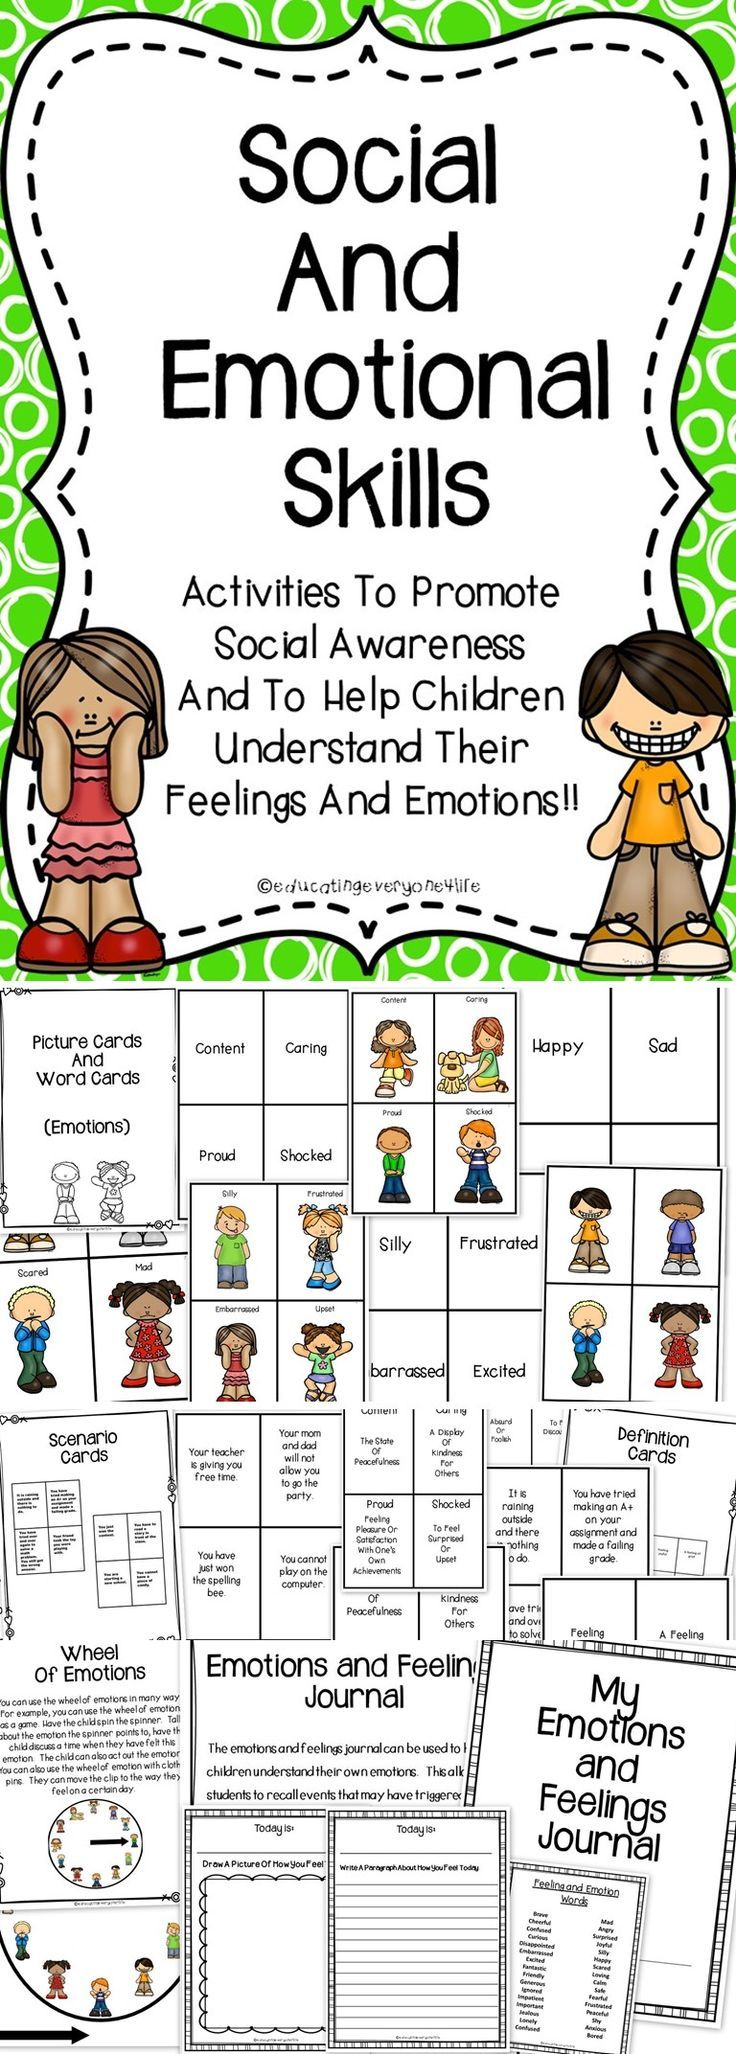 Social Skills - A great resource to help children understand their feelings and emotions.